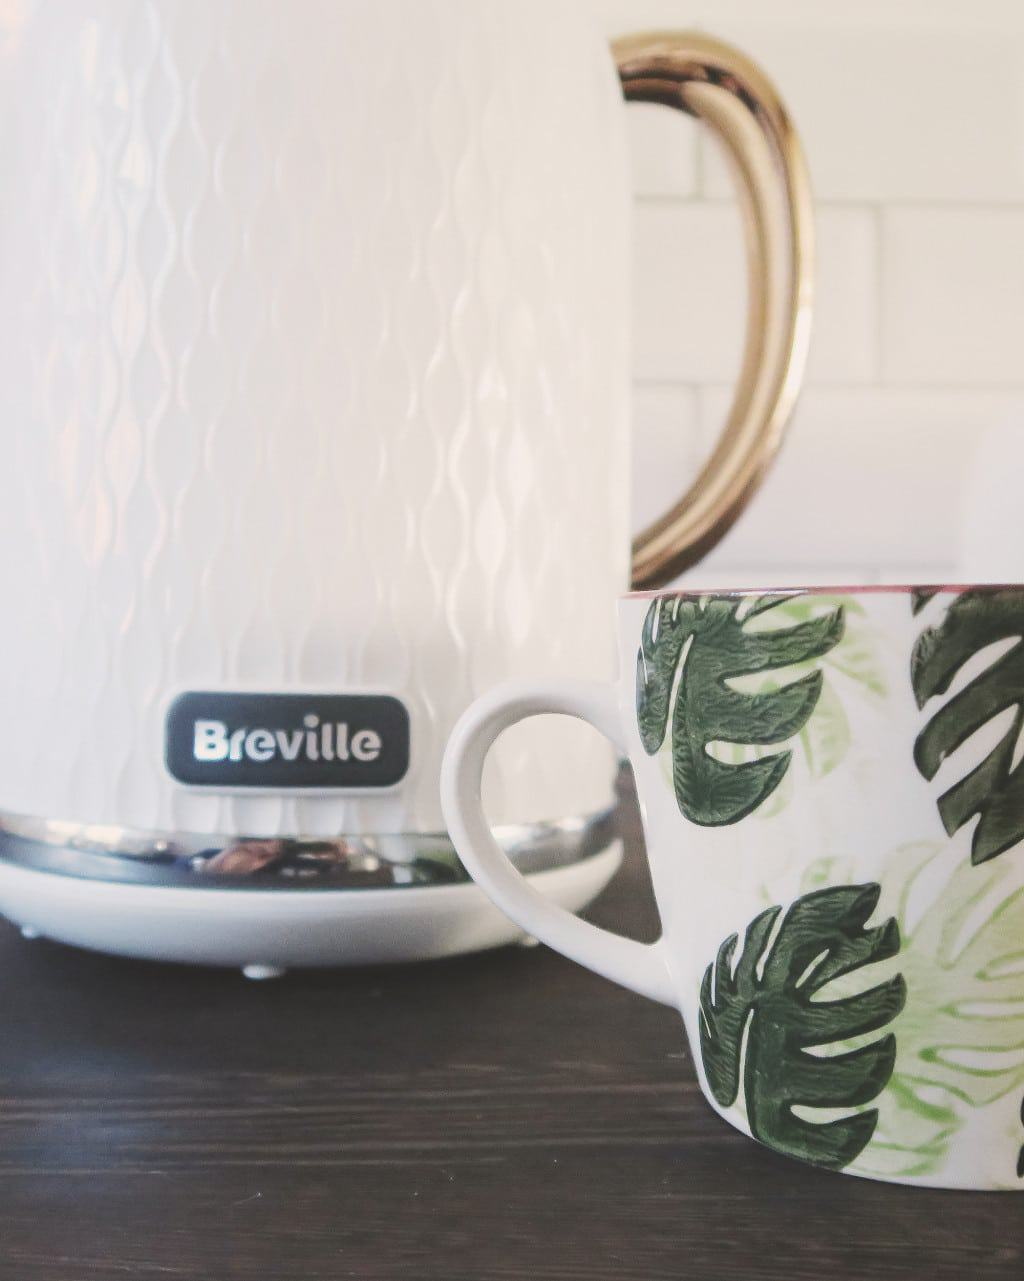 the Breville Curve Kettle — rose gold accents